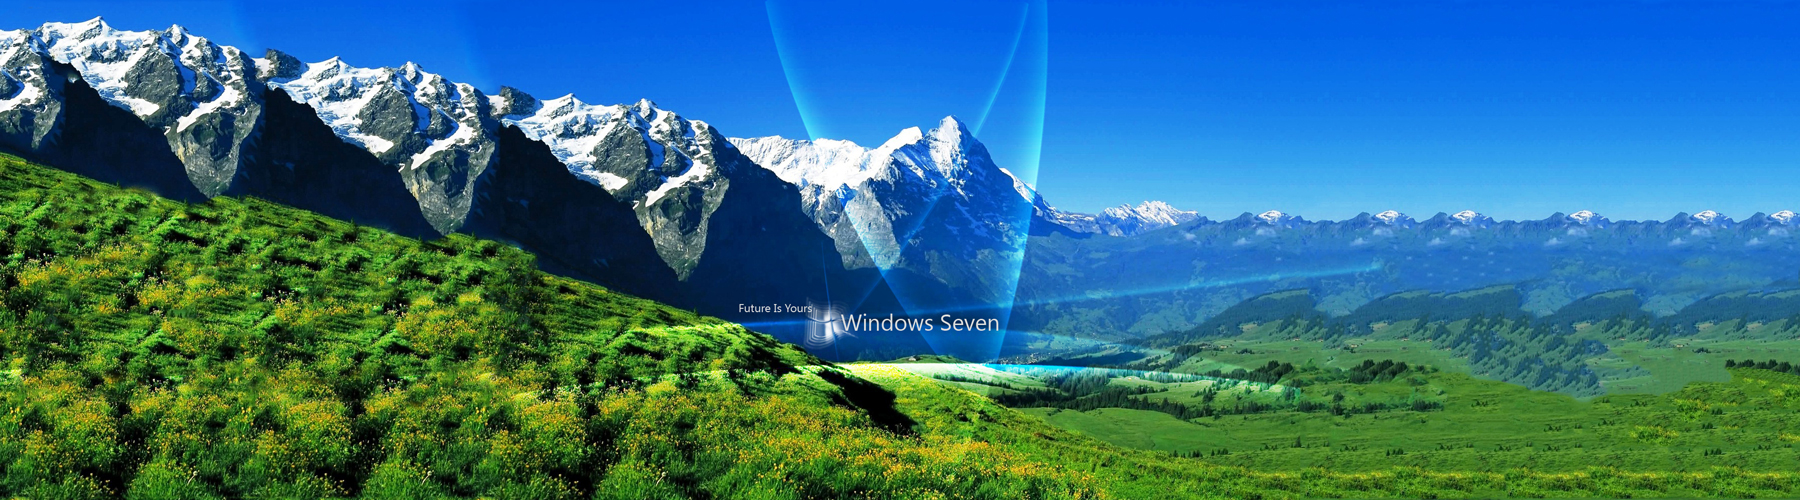 windows-7-future-is-yours-wallpaper.jpg